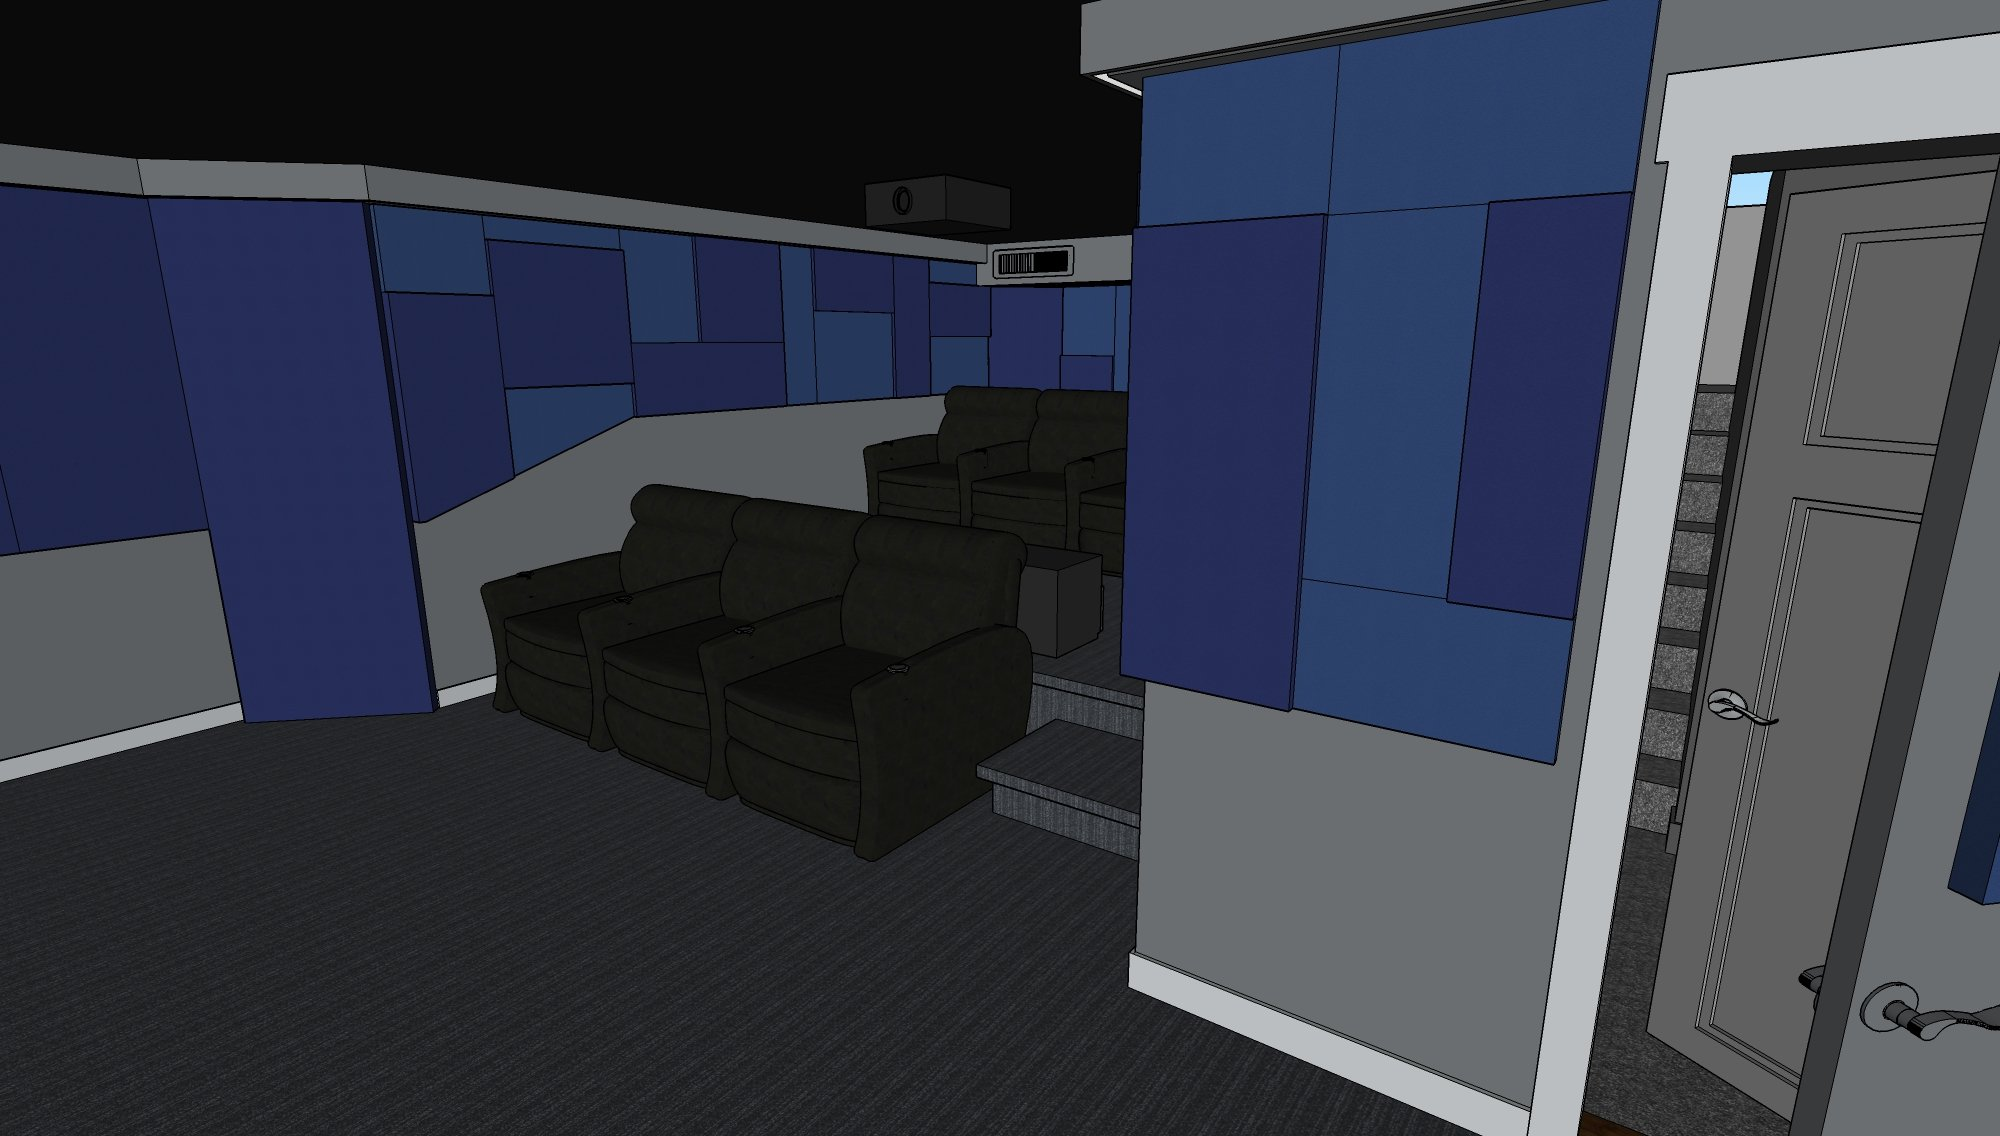 Click image for larger version  Name:Blue Room Theater Enter.jpg Views:58 Size:852.5 KB ID:2567444